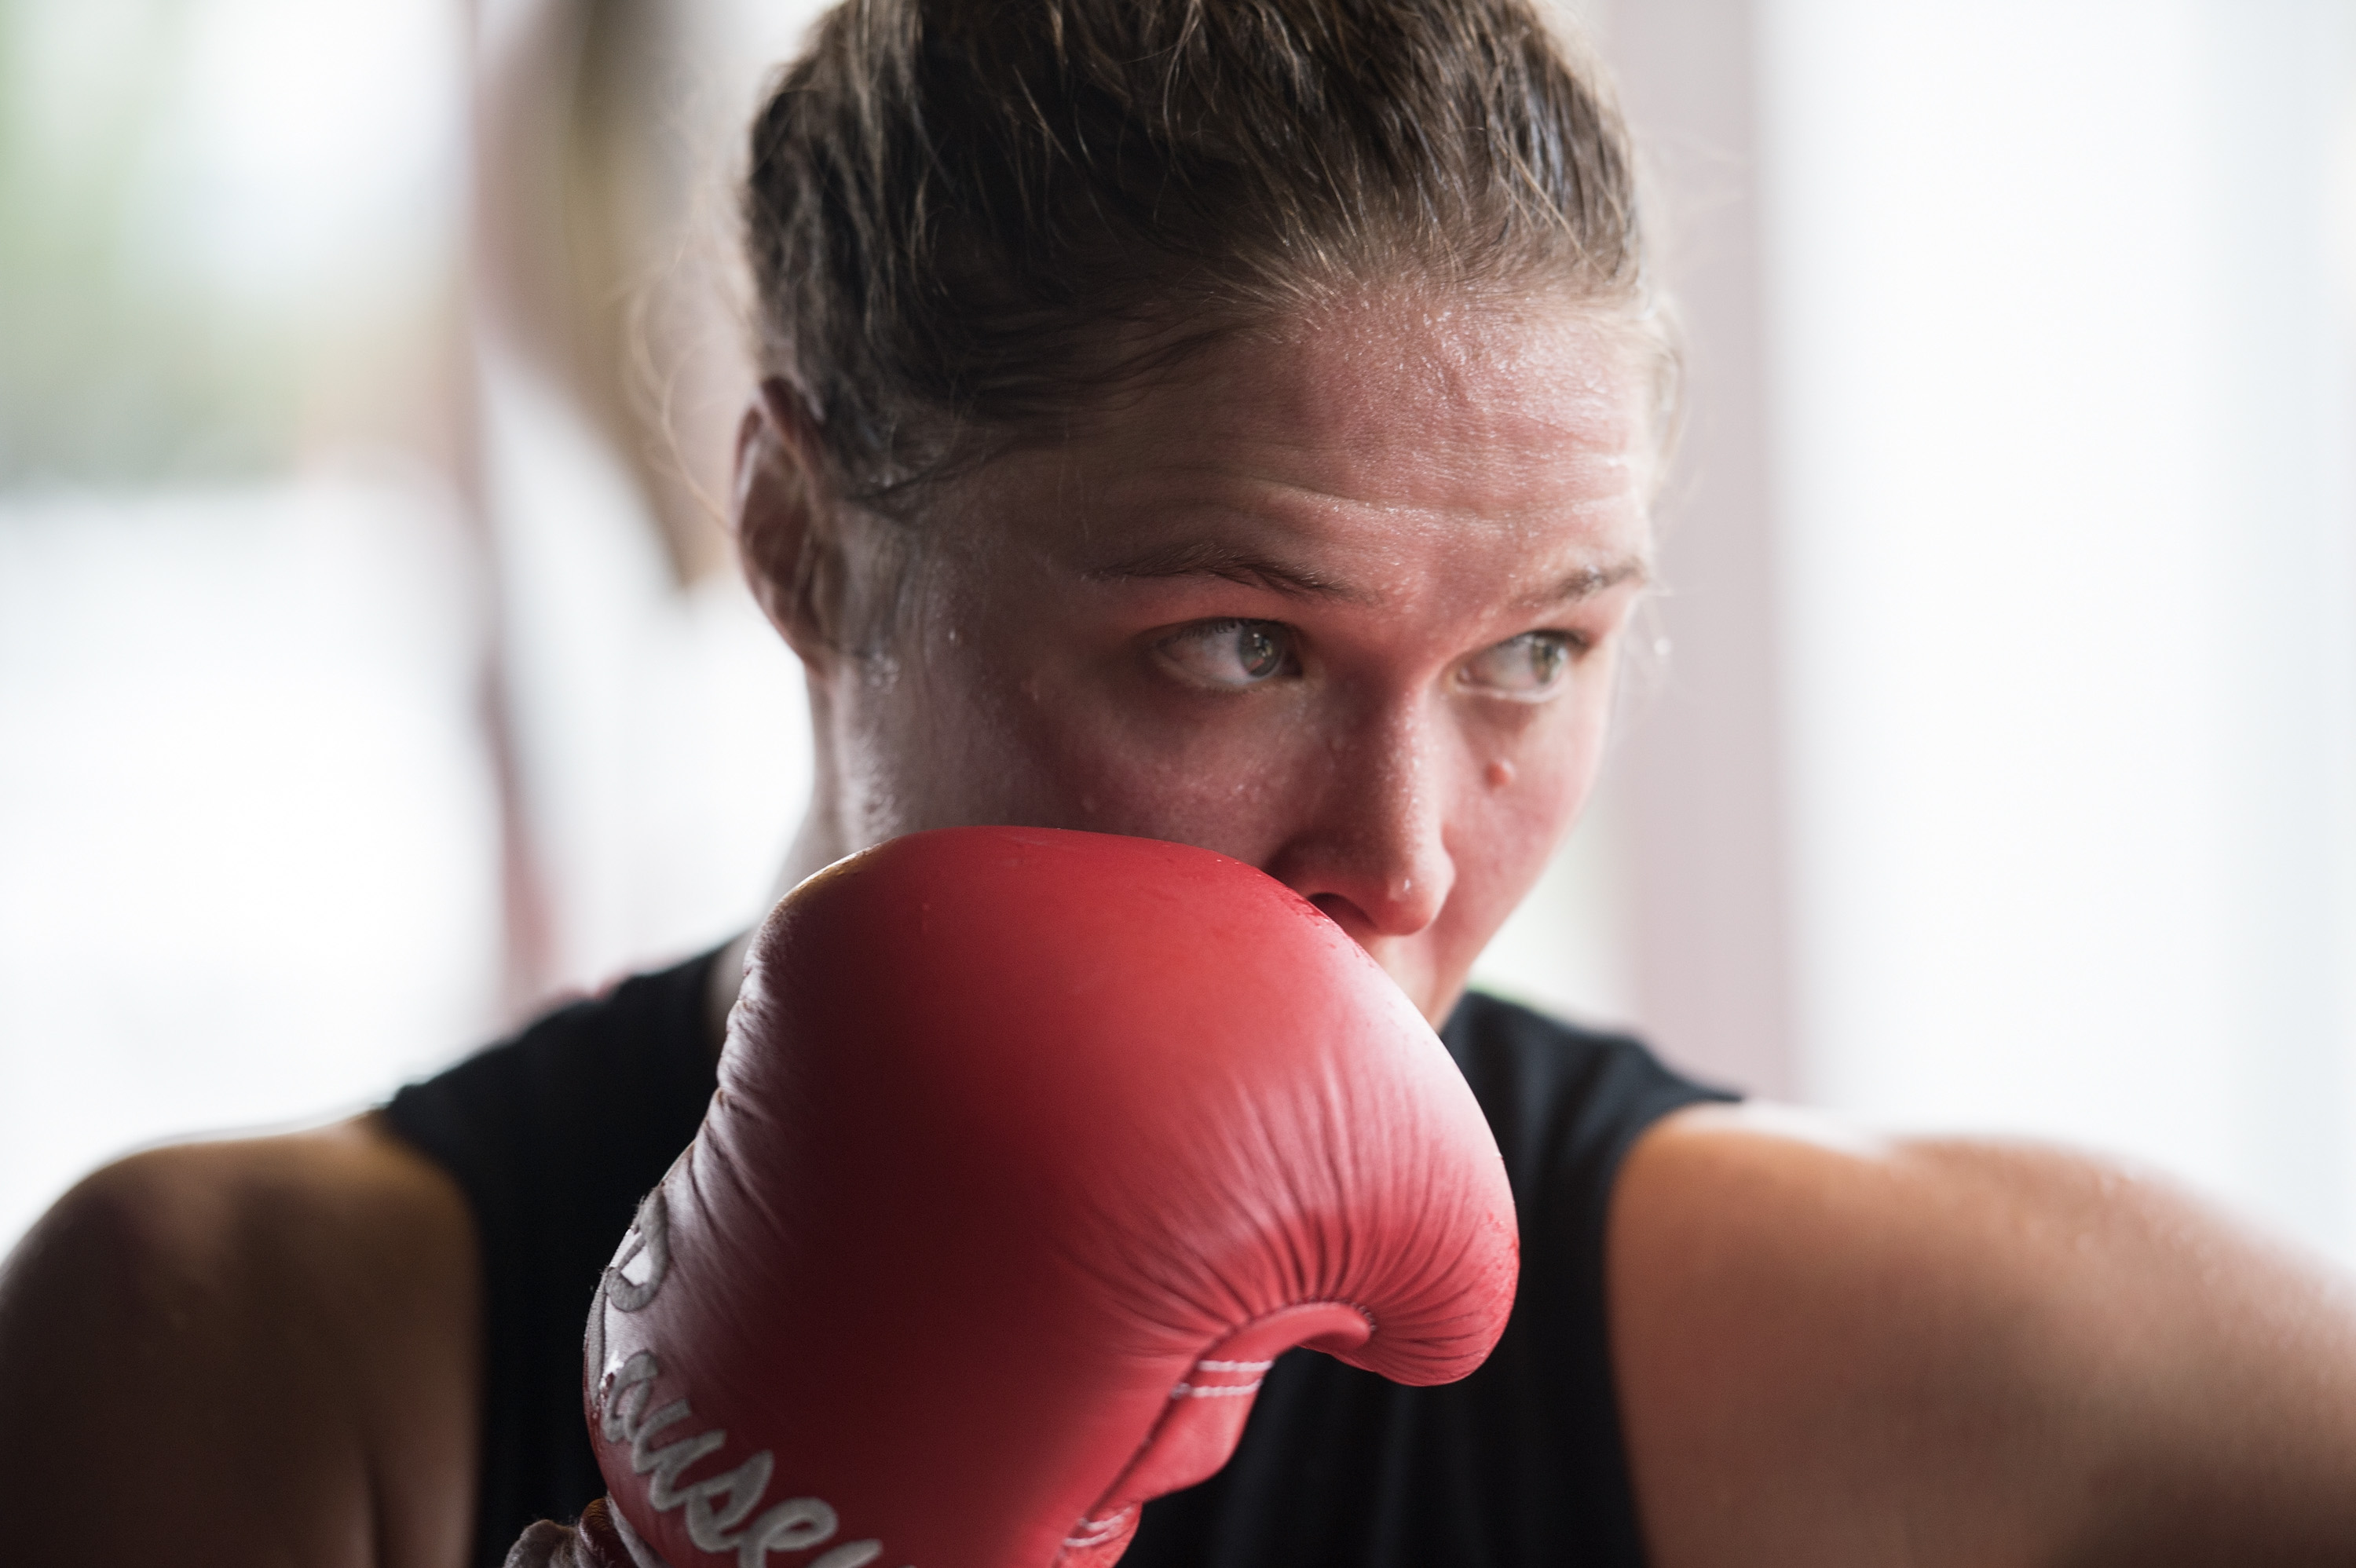 Ronda Rousey cools down after a workout during a media training session at the Glendale Fight Club in Glendale, CA on Oct. 27, 2015.